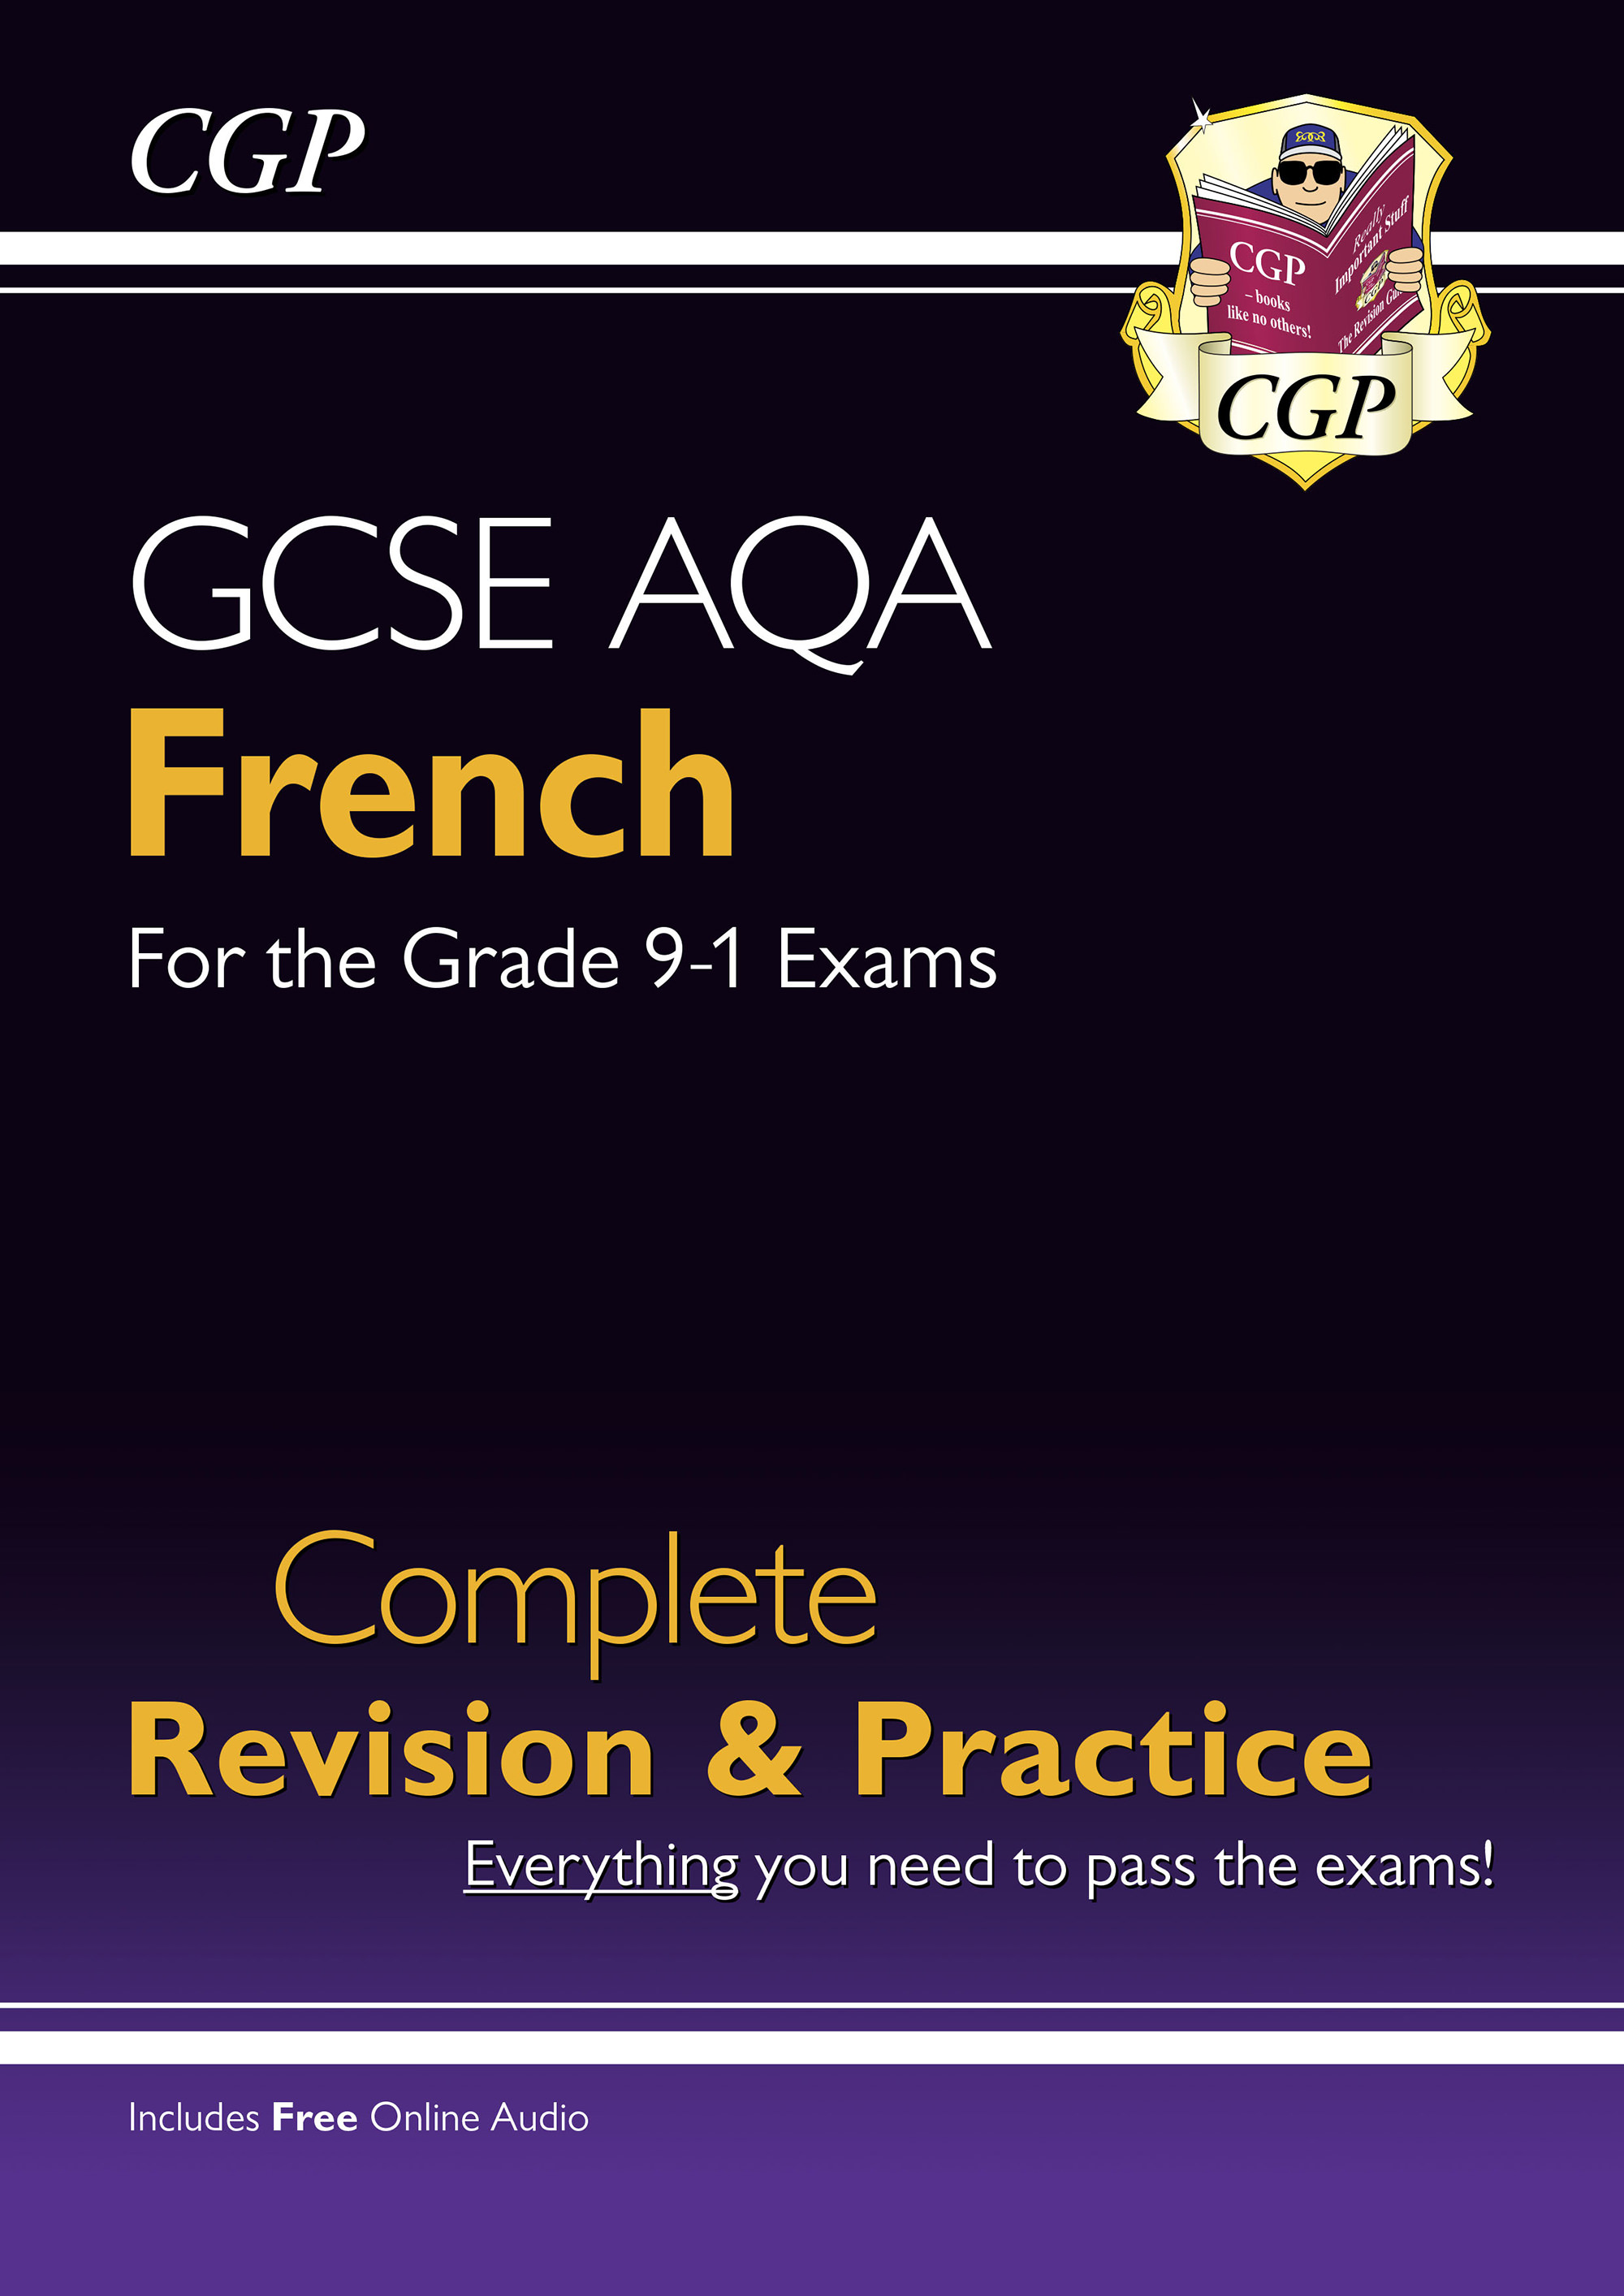 FAS41DK - New GCSE French AQA Complete Revision & Practice - Grade 9-1 Course